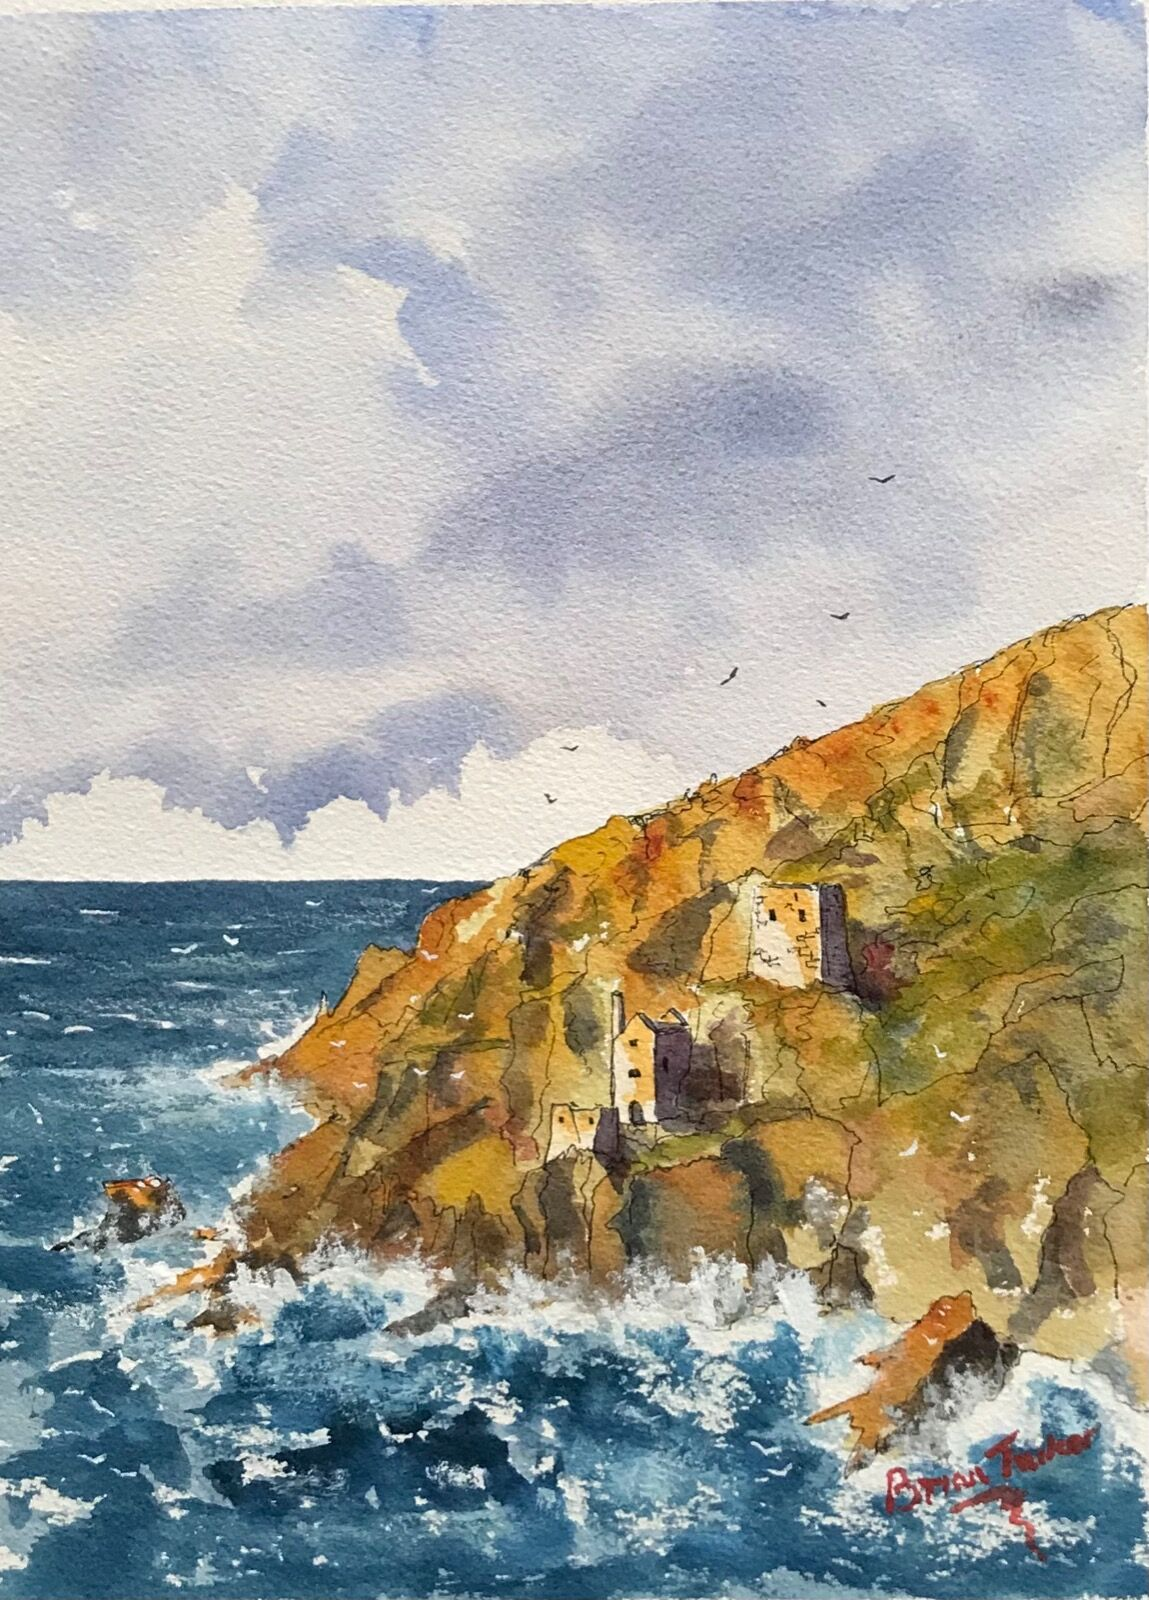 Stormy seas at Botallack Mine in Cornwall